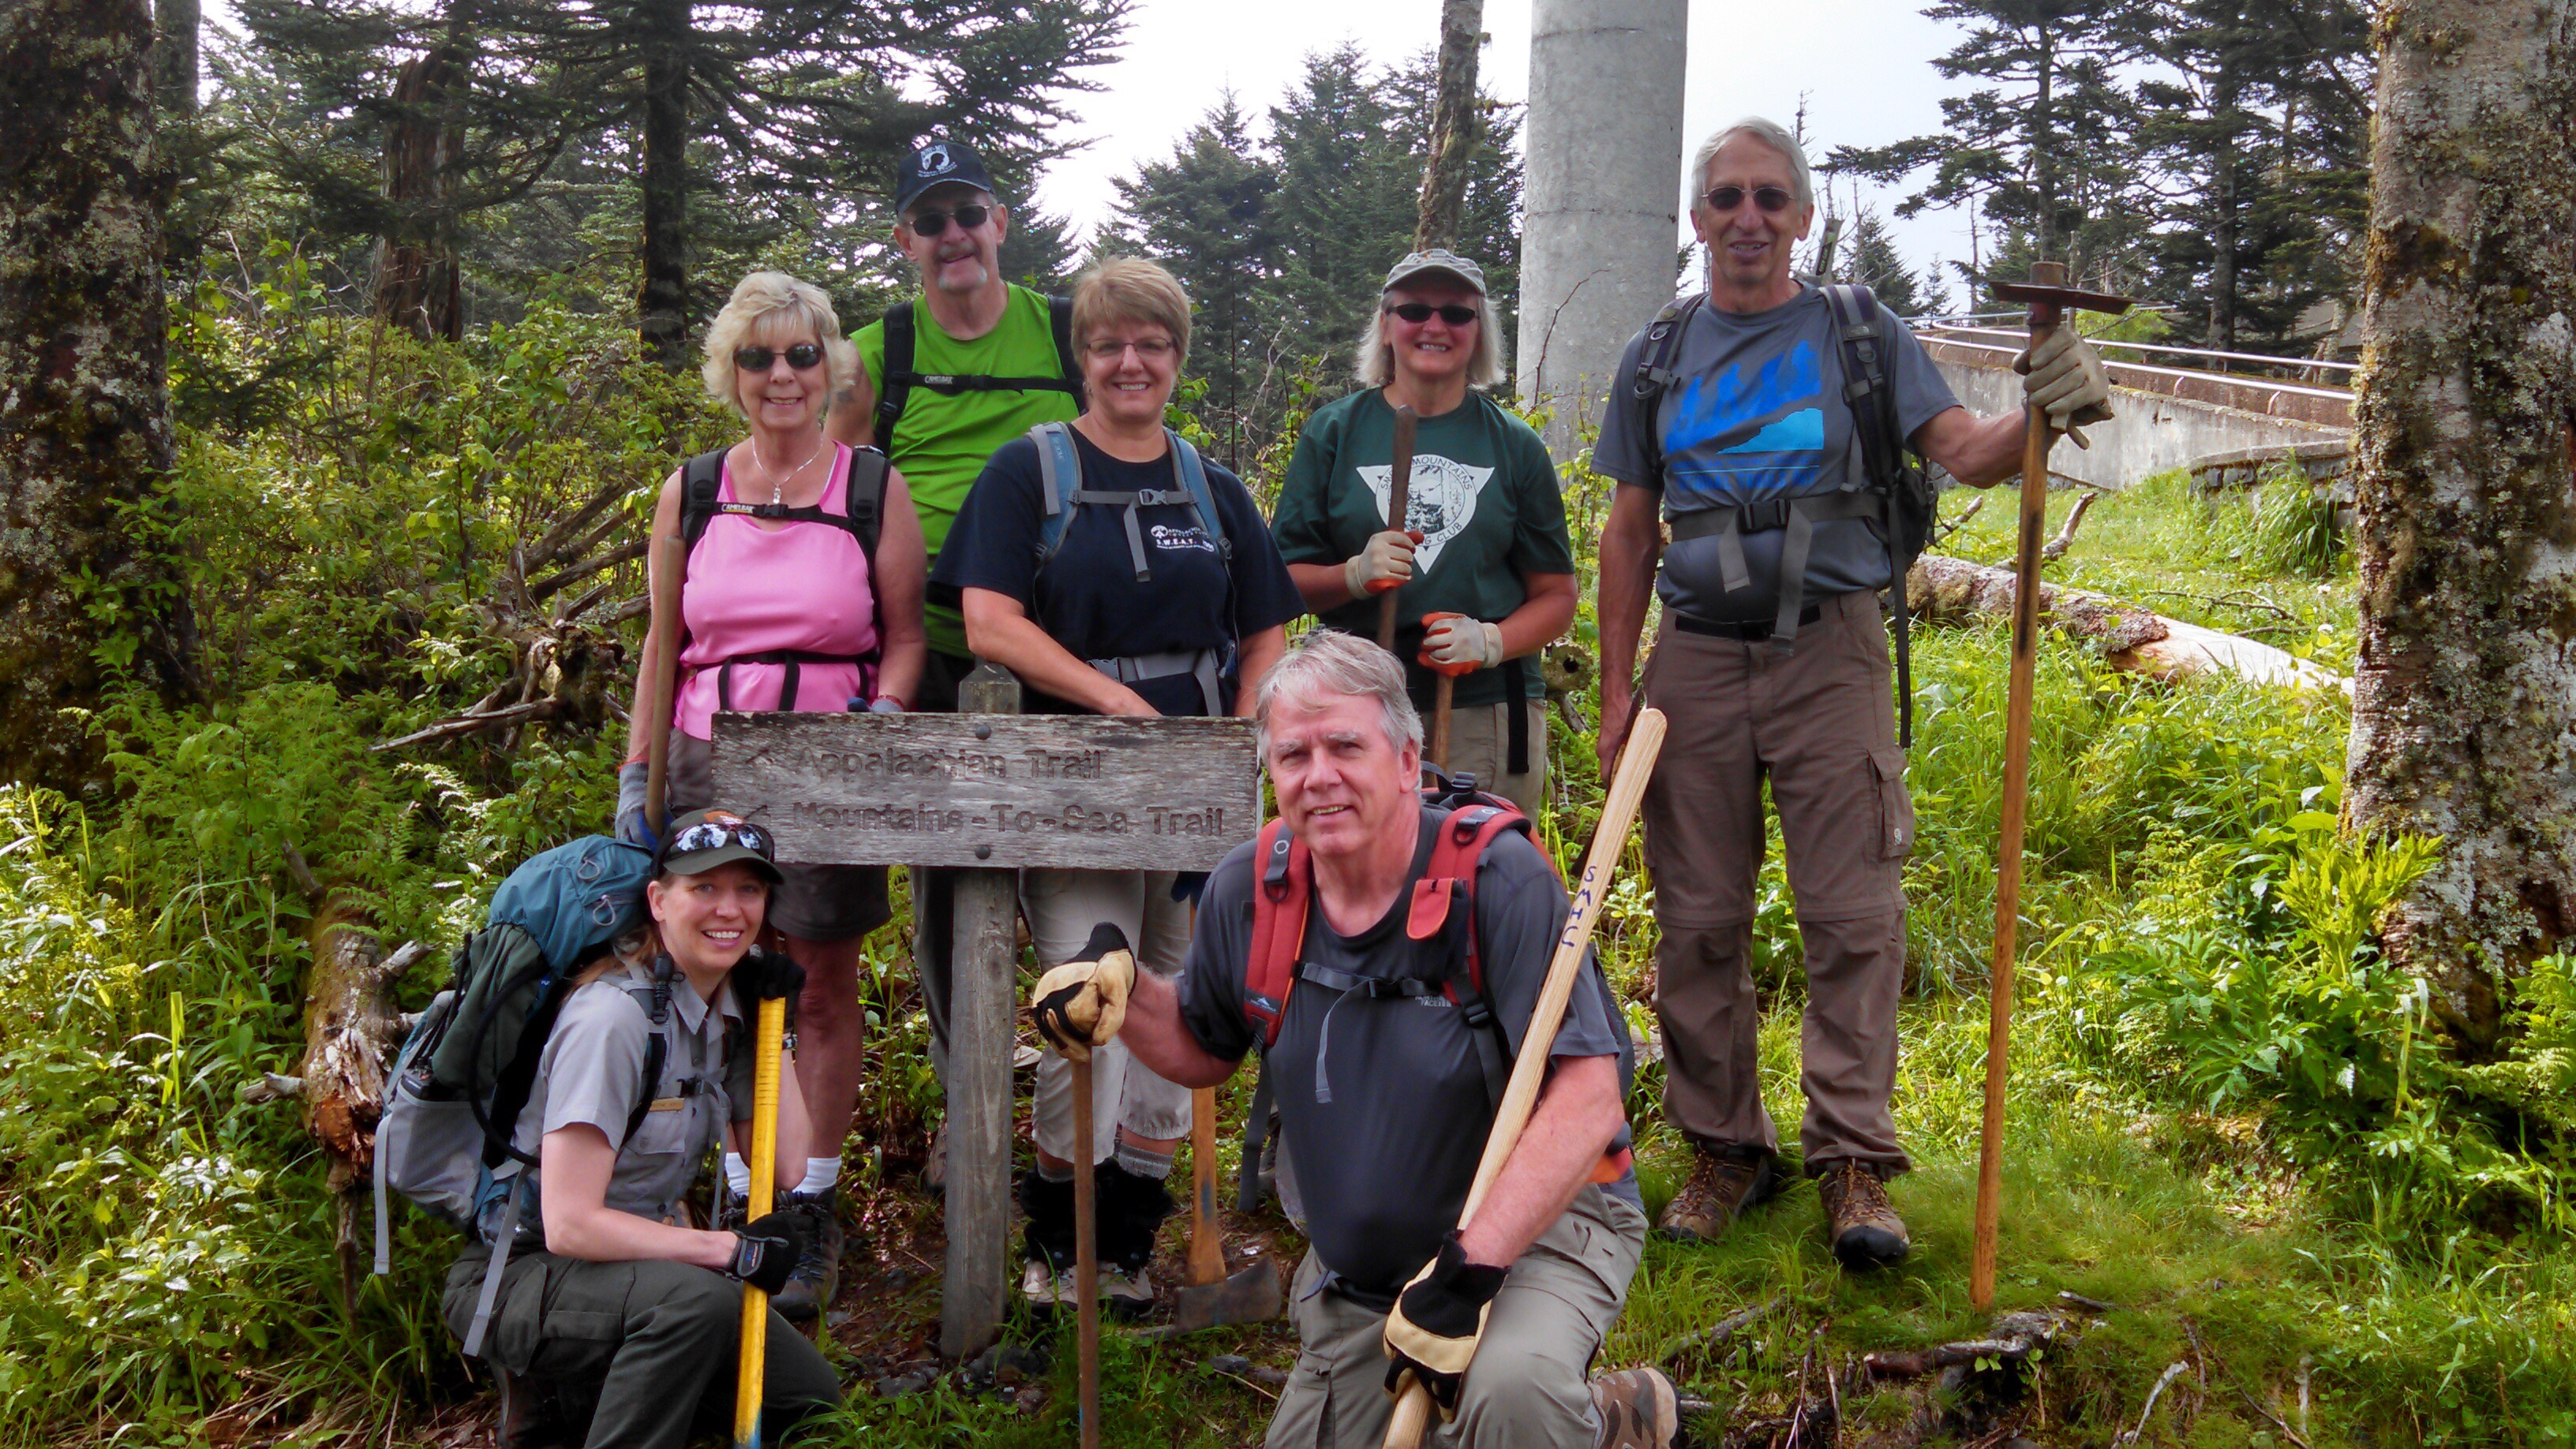 Park Invites Volunteers to an Appalachian Trail Work Day